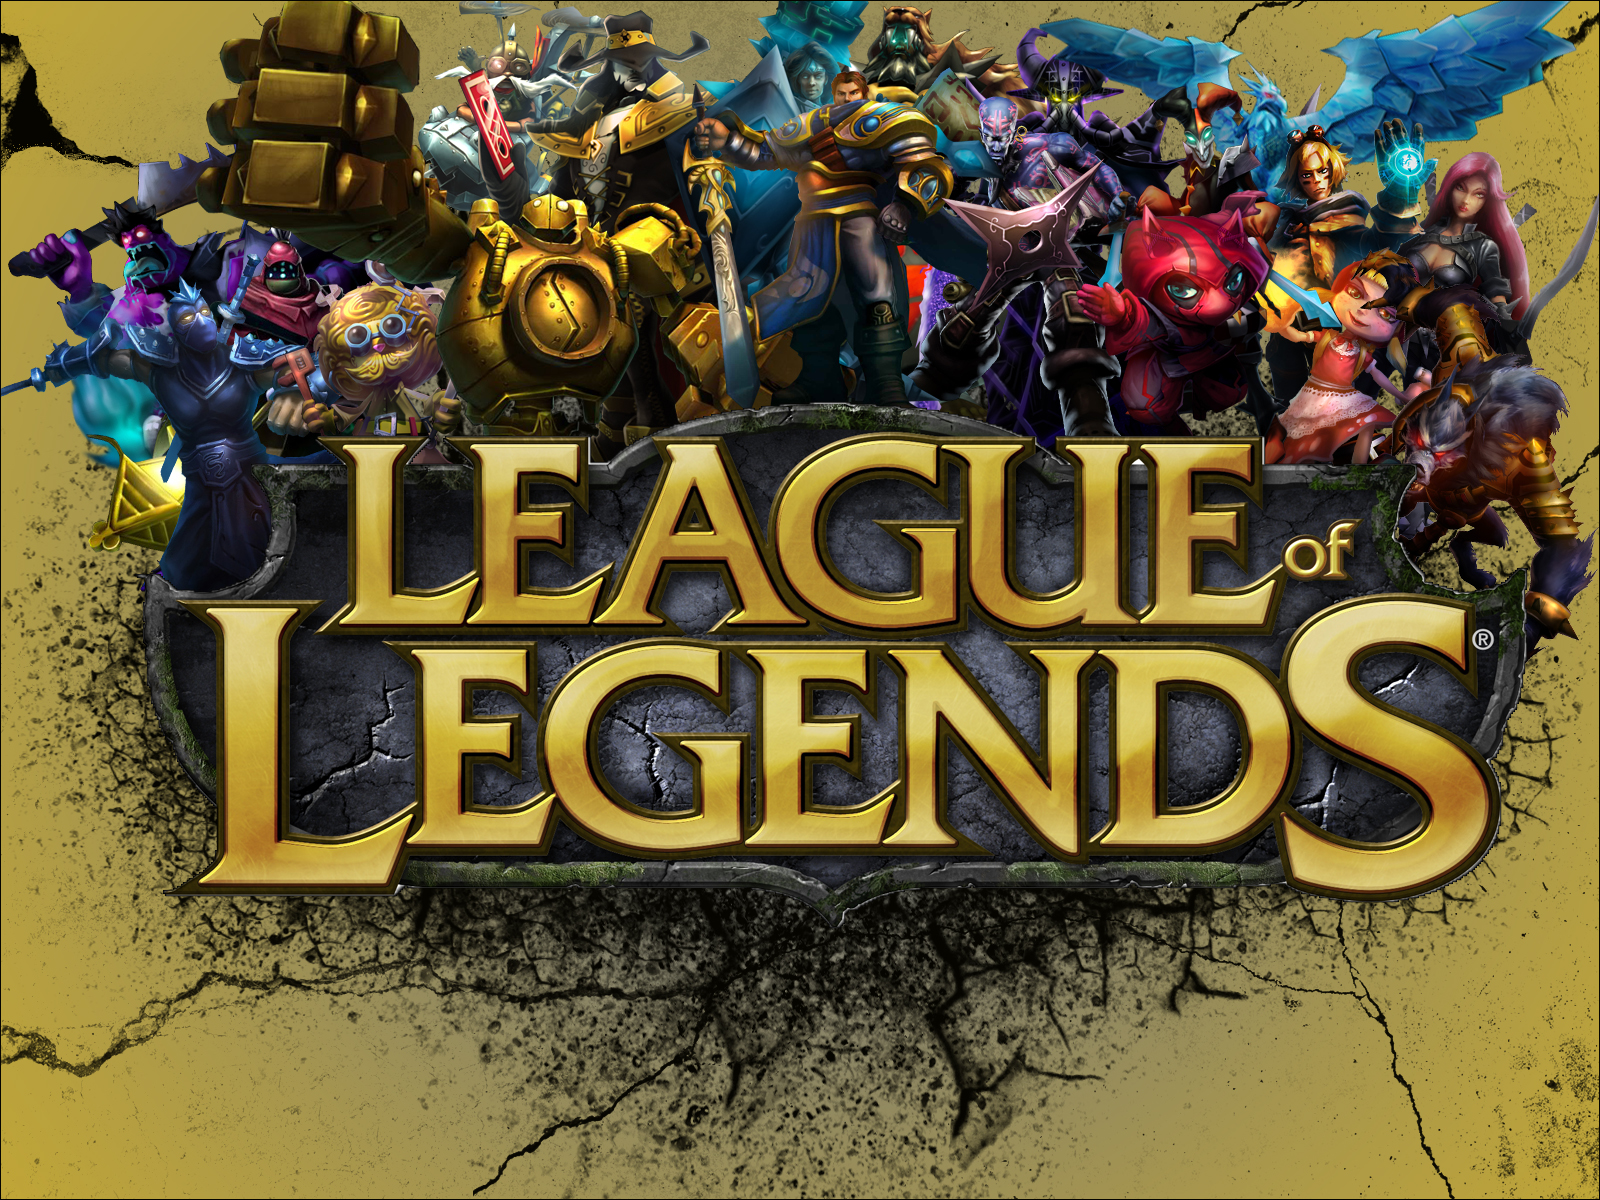 http://2.bp.blogspot.com/-ZCXAx1MNgDk/UASJ9Bh4AXI/AAAAAAAAAJU/tQLPqlR25vQ/s1600/league-of-legends-wallpaper.jpg